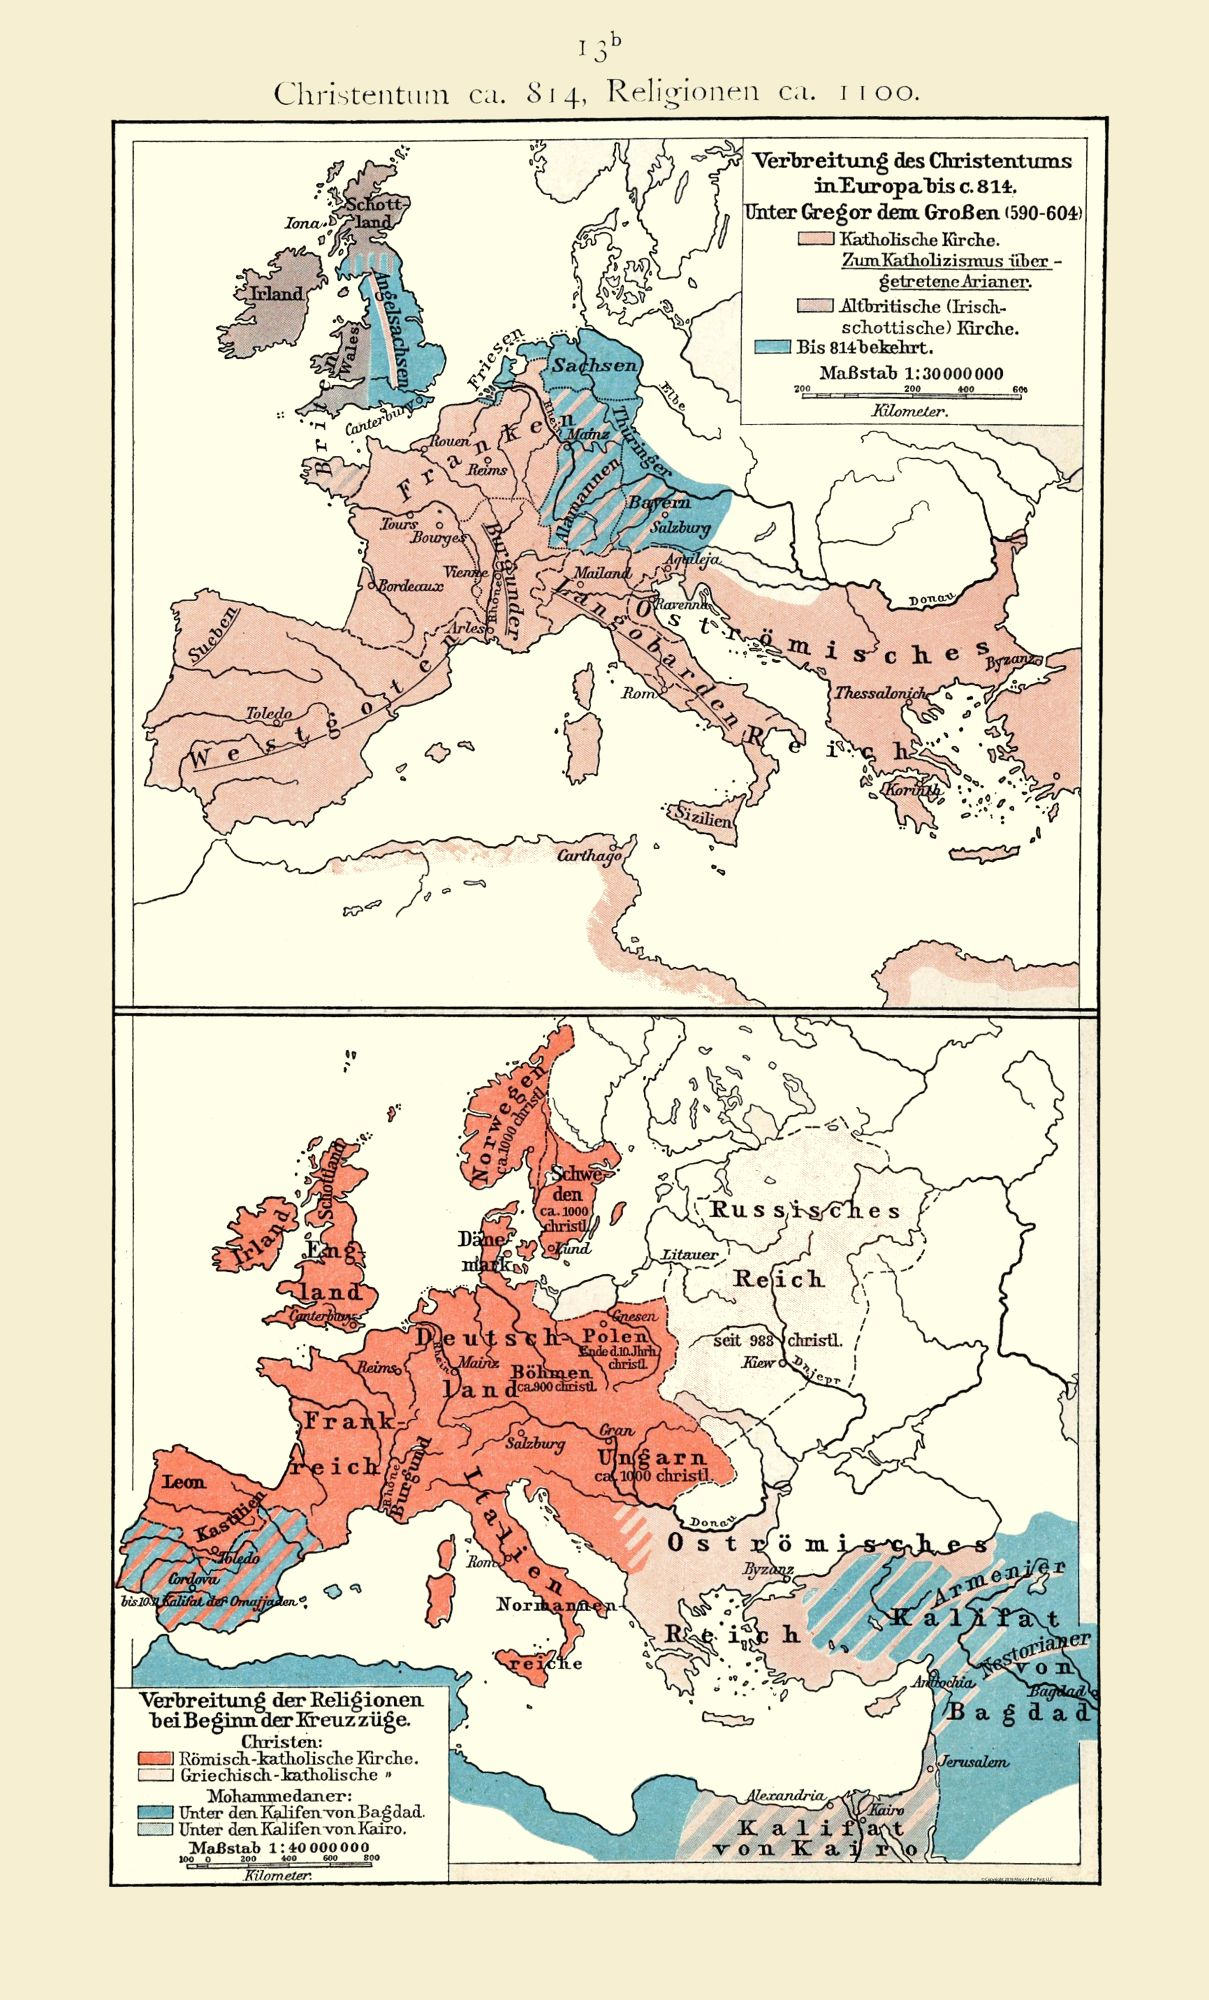 Map Of Europe 1100 Ad.Old International Maps Christianity 814 Bc 1100 Ad Europe